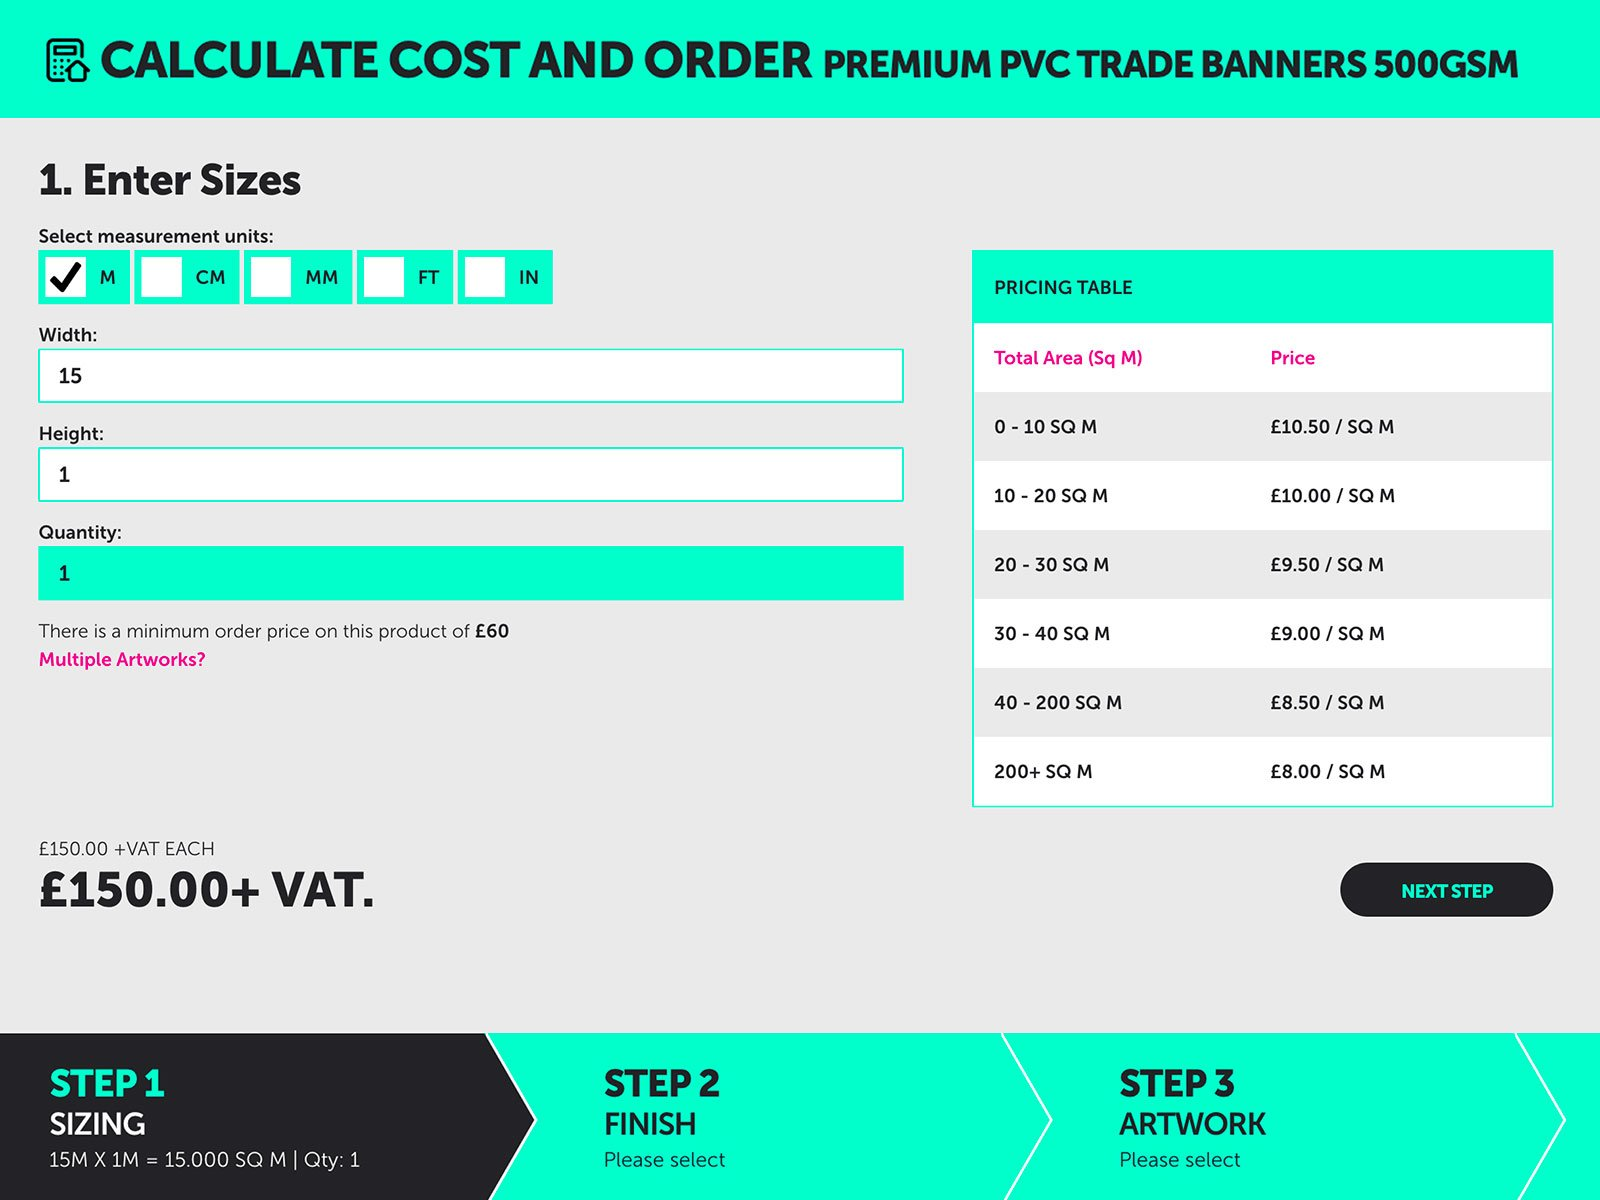 Ordering multiple banners at the same size